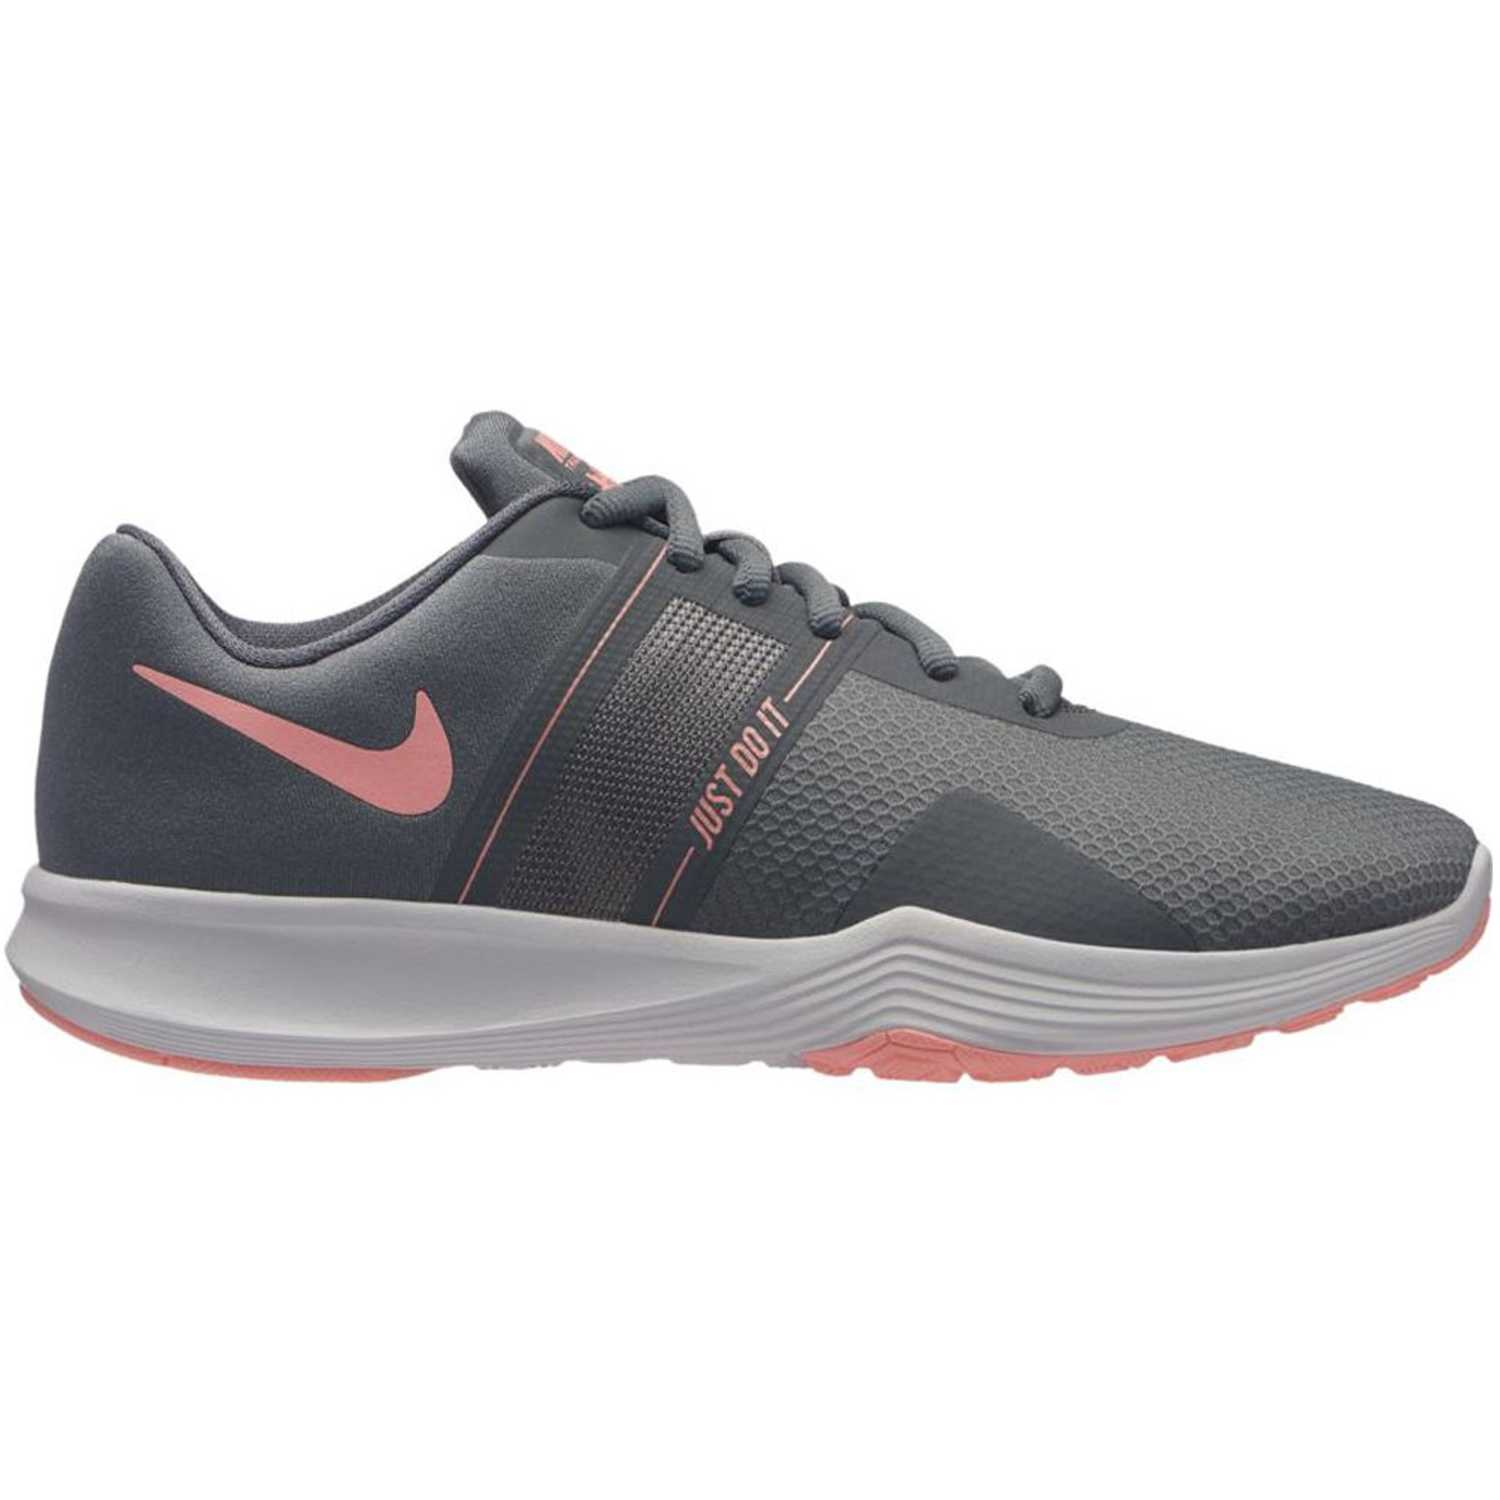 Nike WMNS NIKE CITY TRAINER 2 Gris / rosado Mujeres